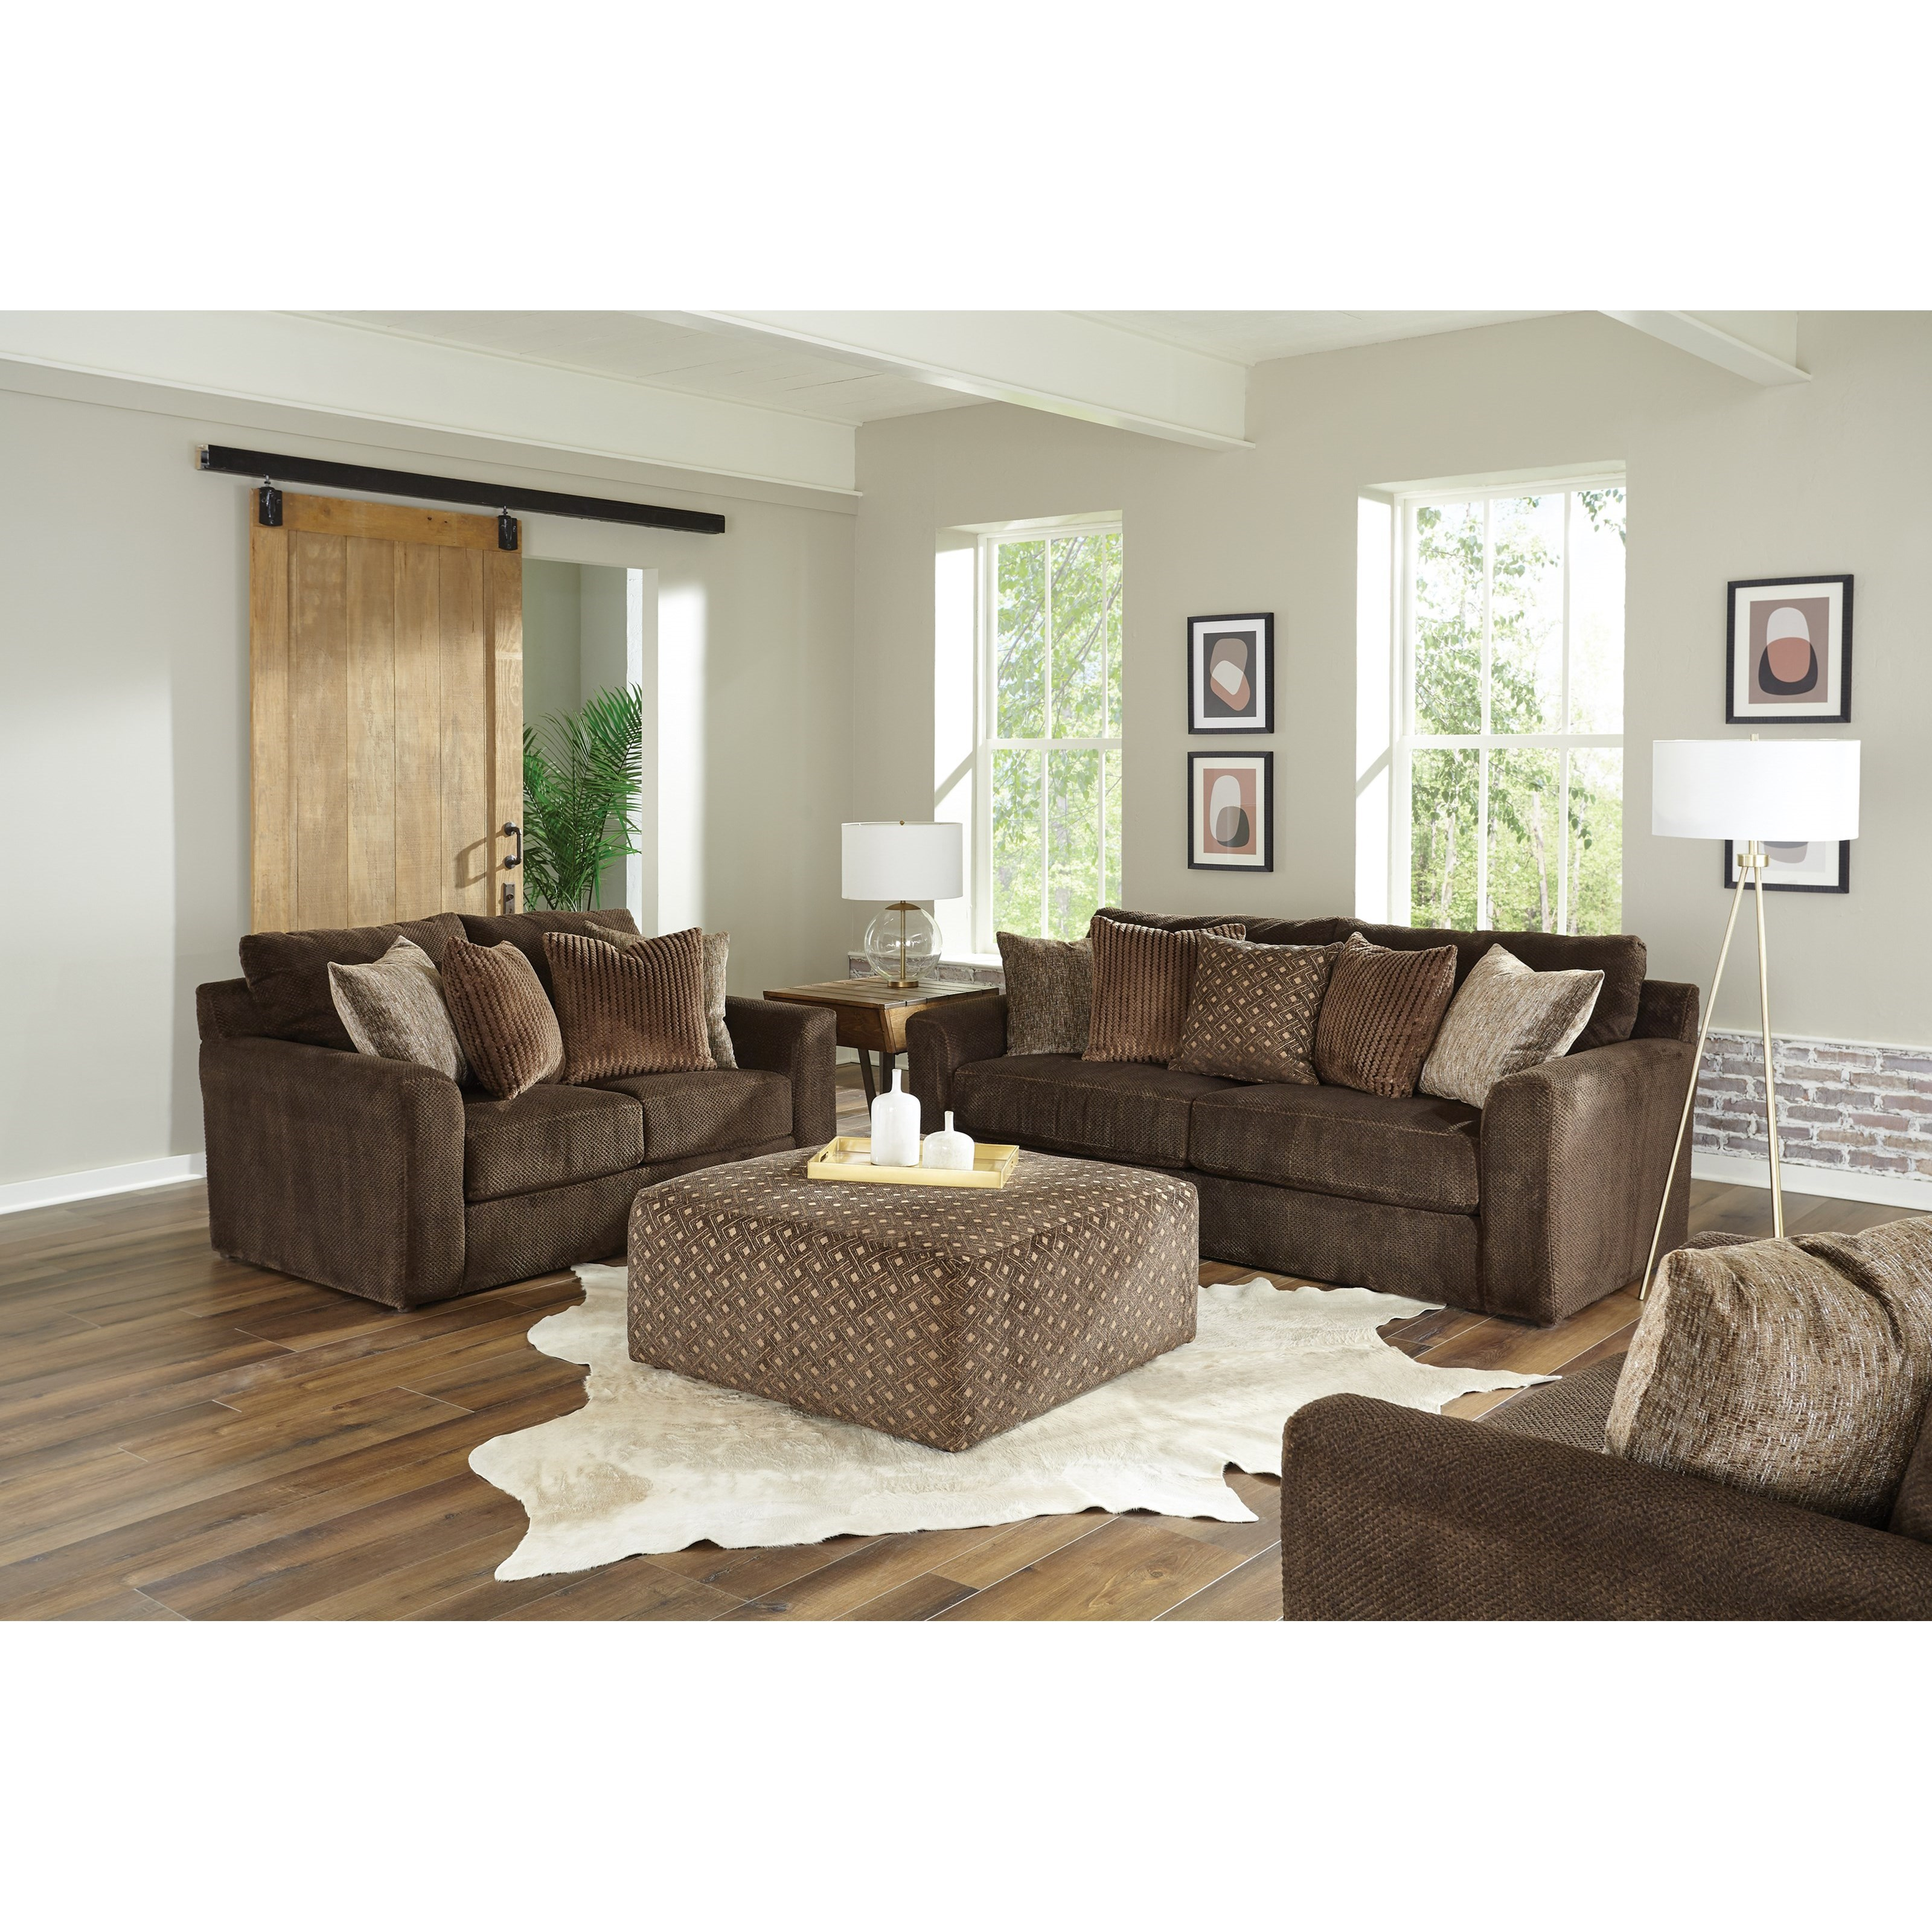 Midwood Living Room Group by Jackson Furniture at Johnny Janosik